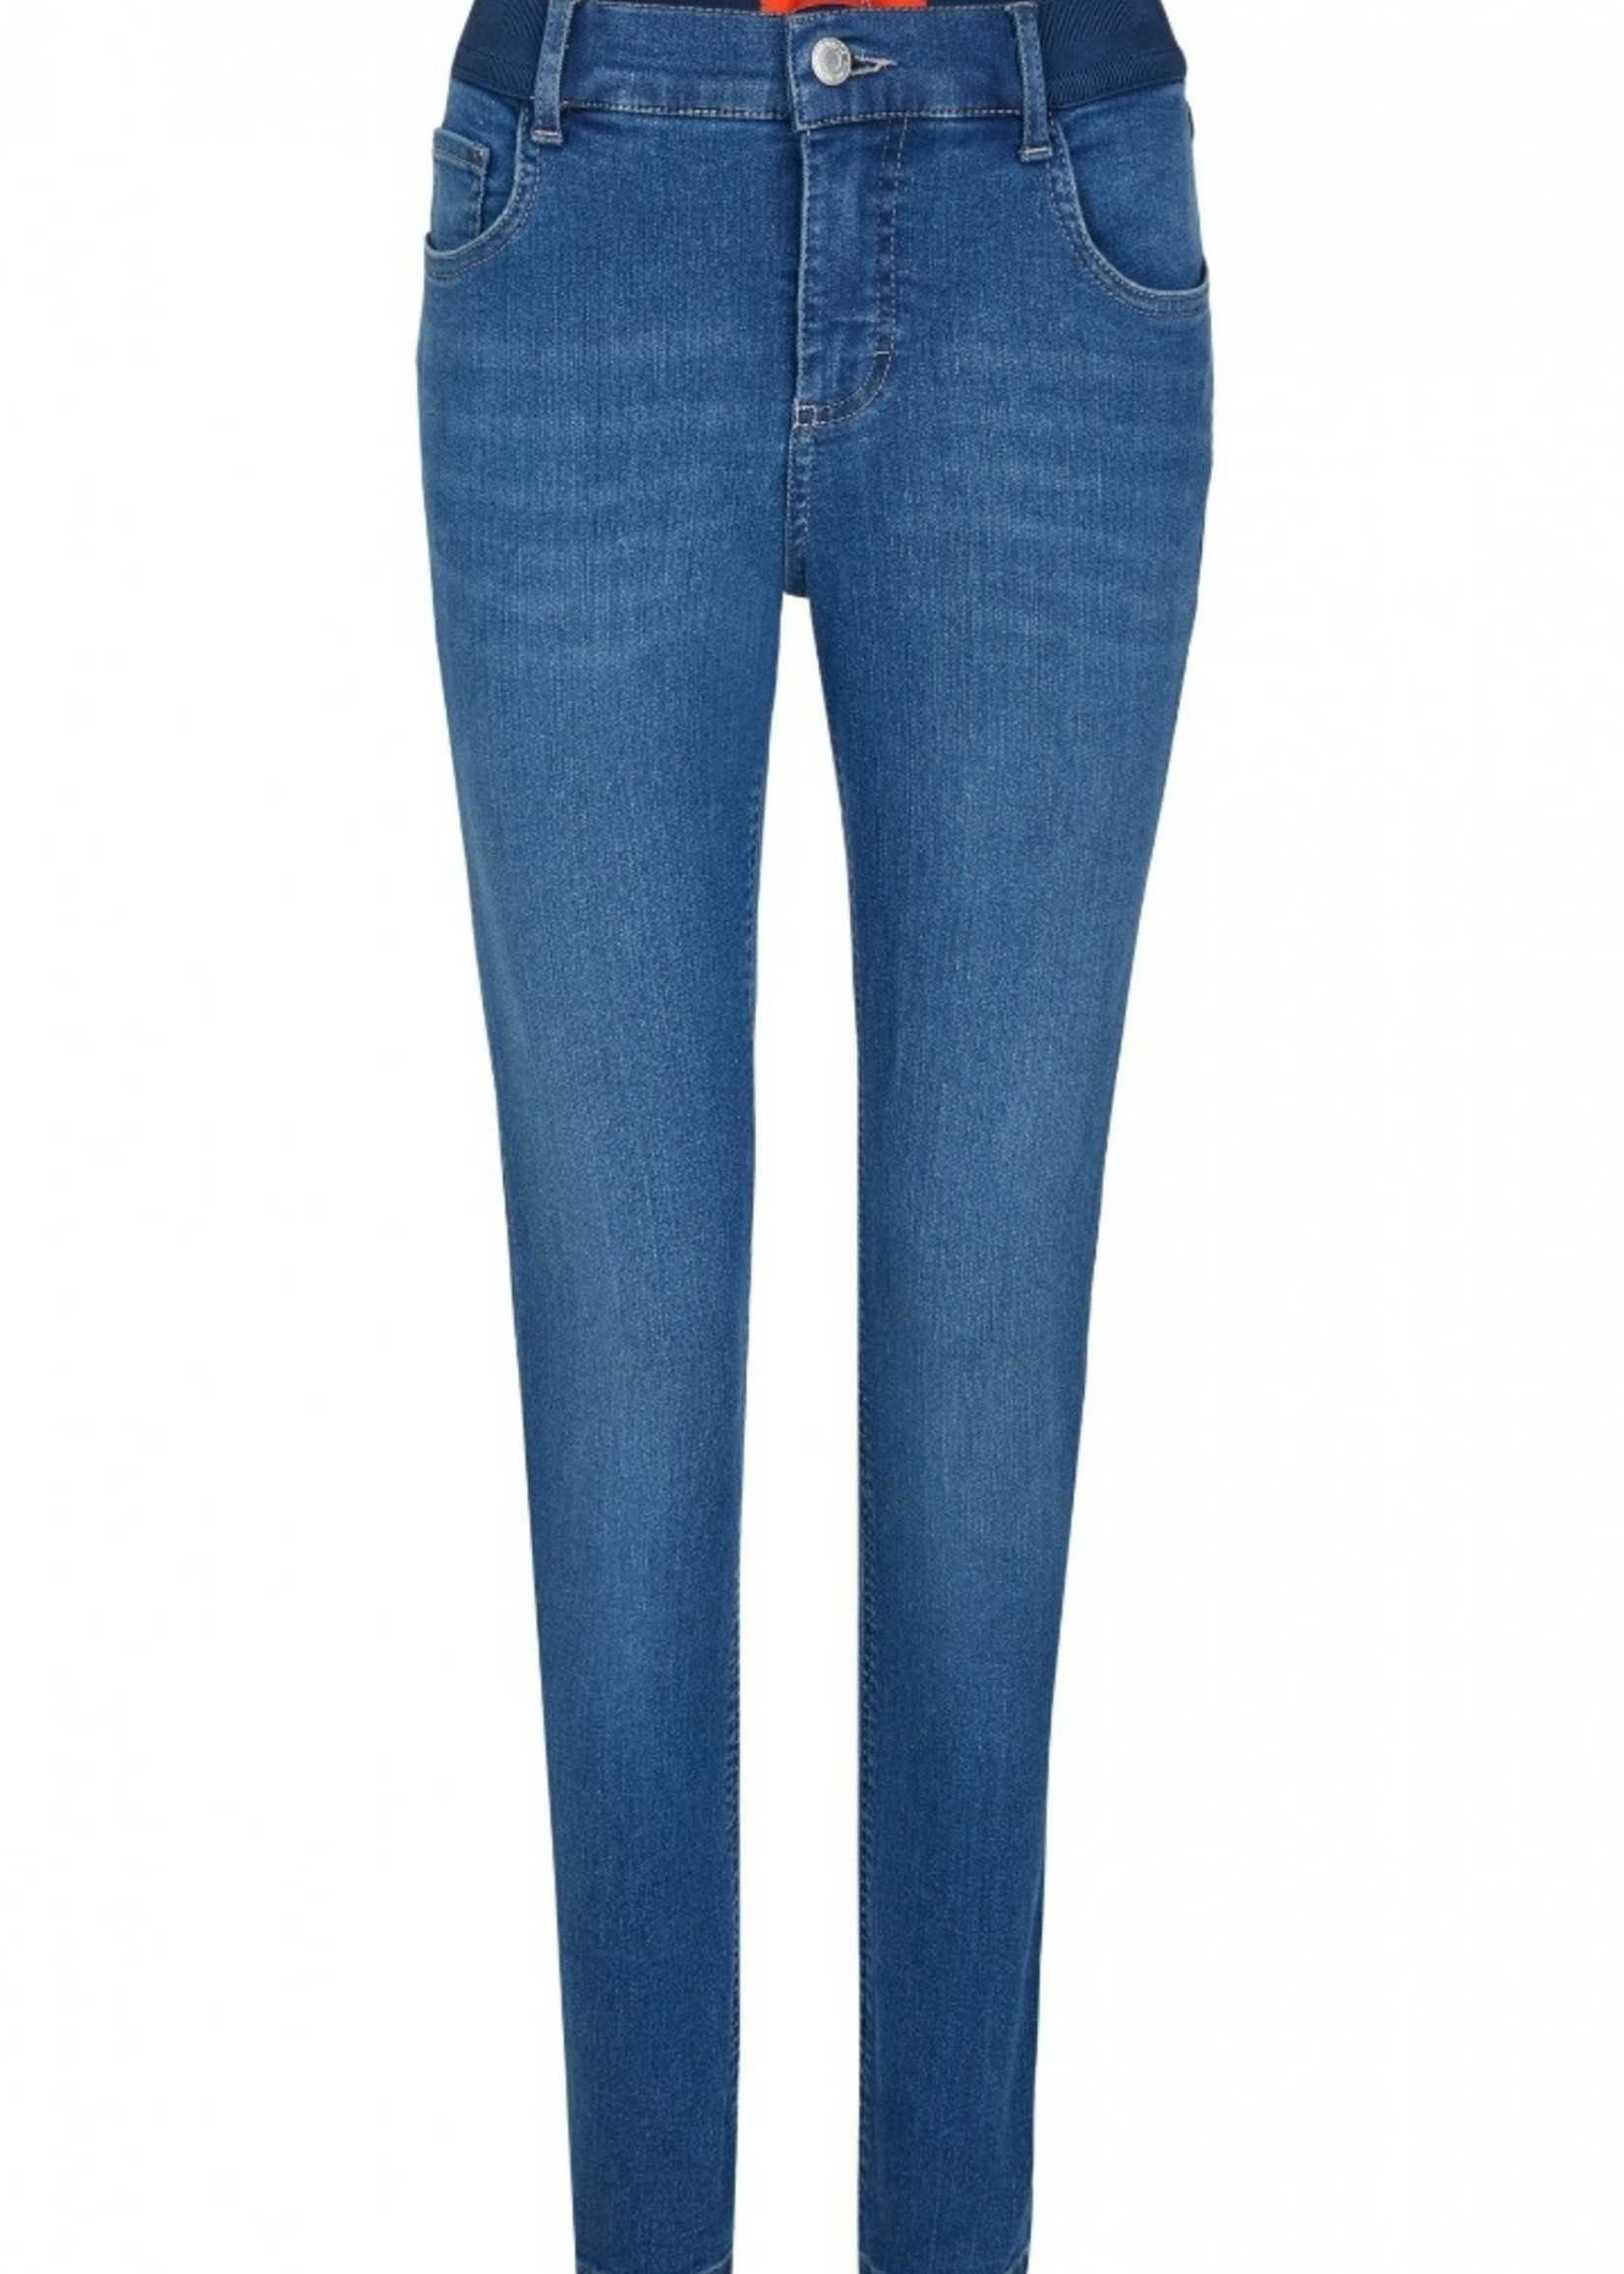 Angels Angels One Size Jeans Mid Blue